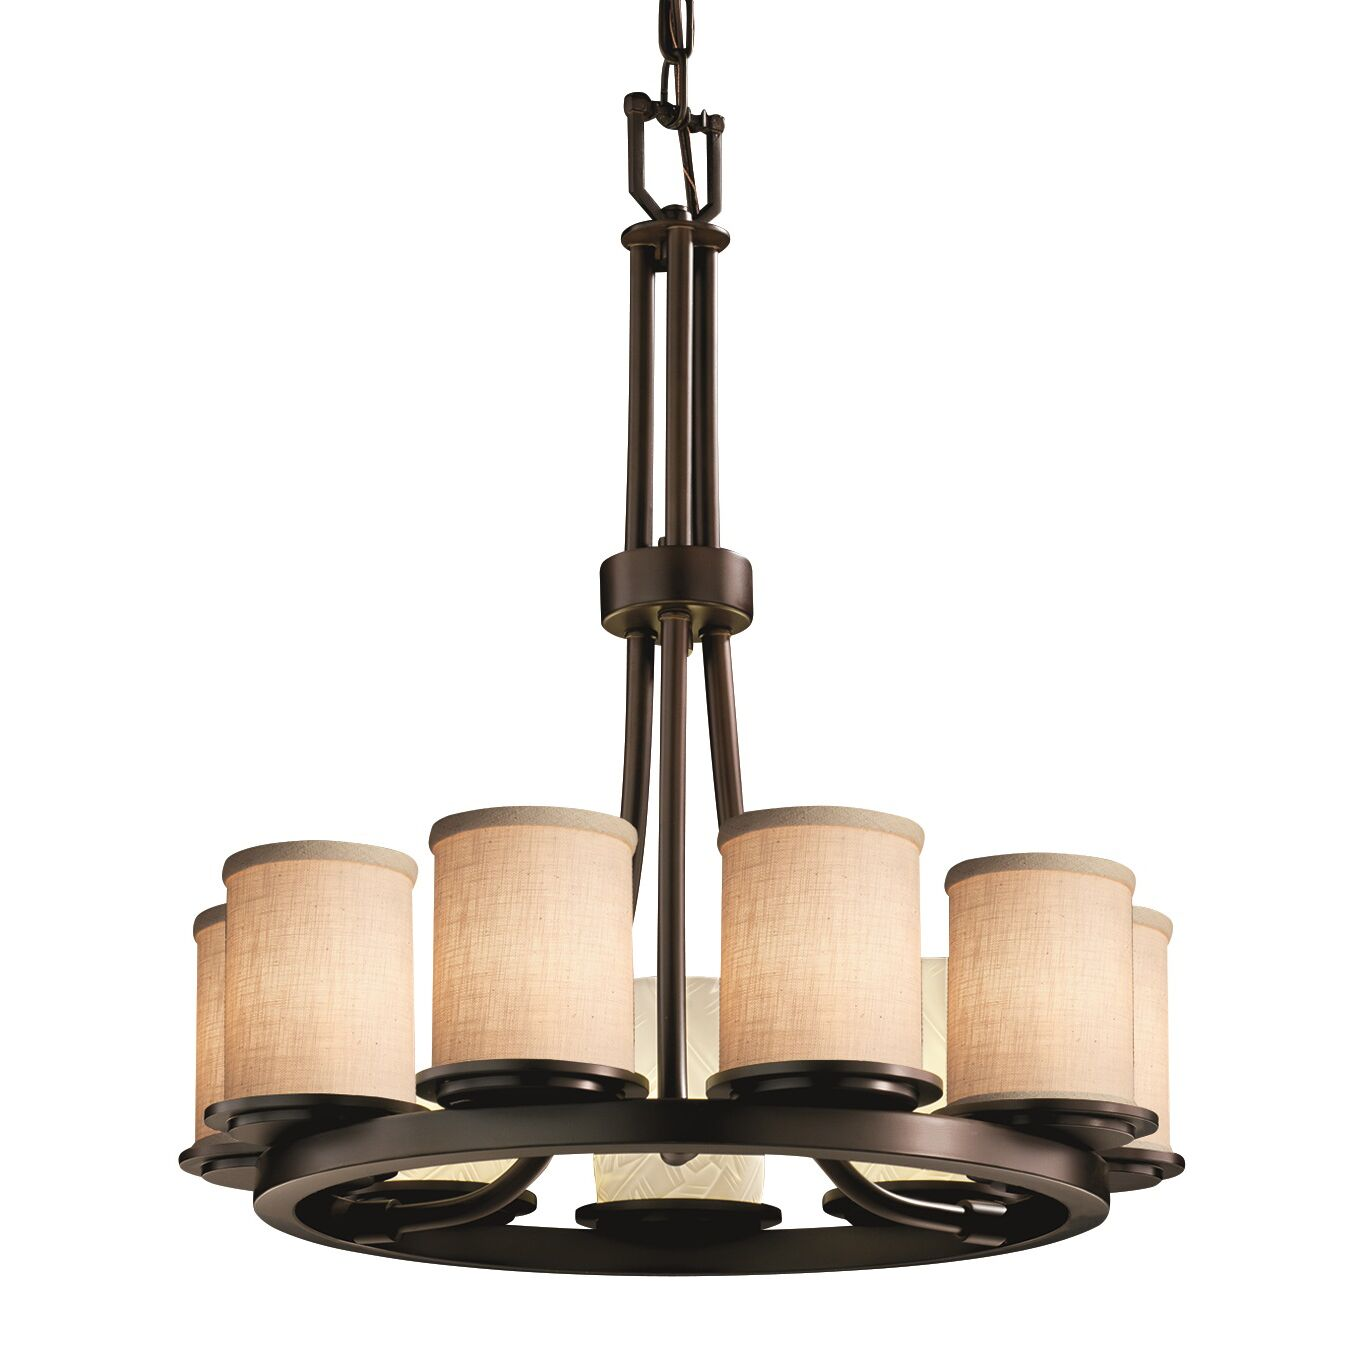 Red Hook 9 Light Cylinder w/ Flat Rim Chandelier Finish: Brushed Nickel, Shade Color: White